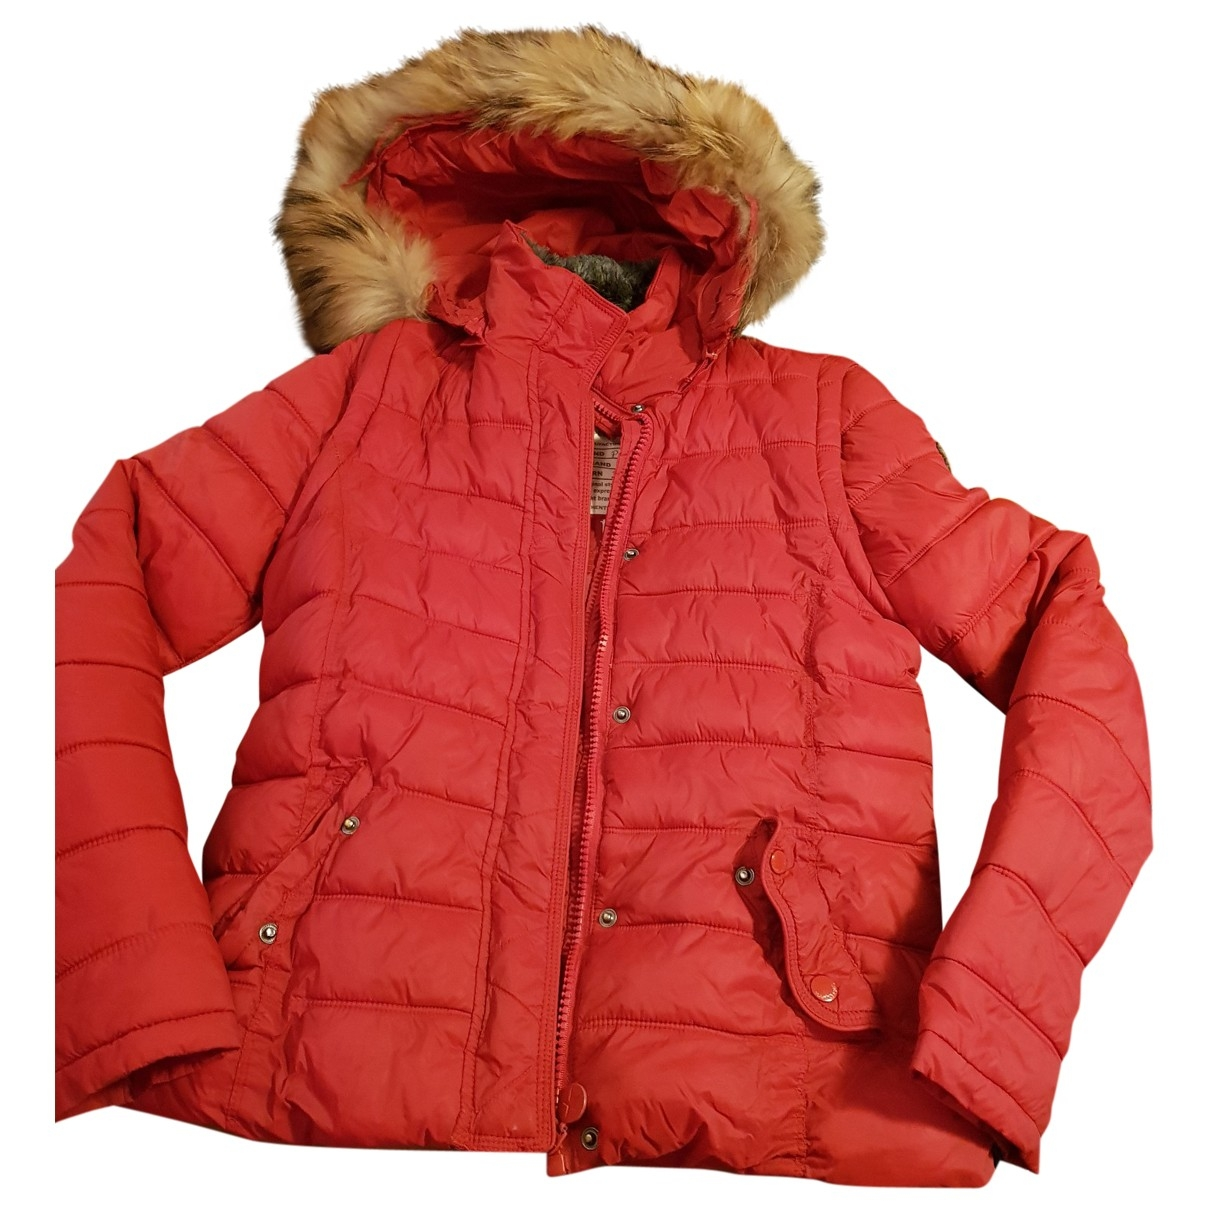 Sud Express \N Red coat for Women 34 FR